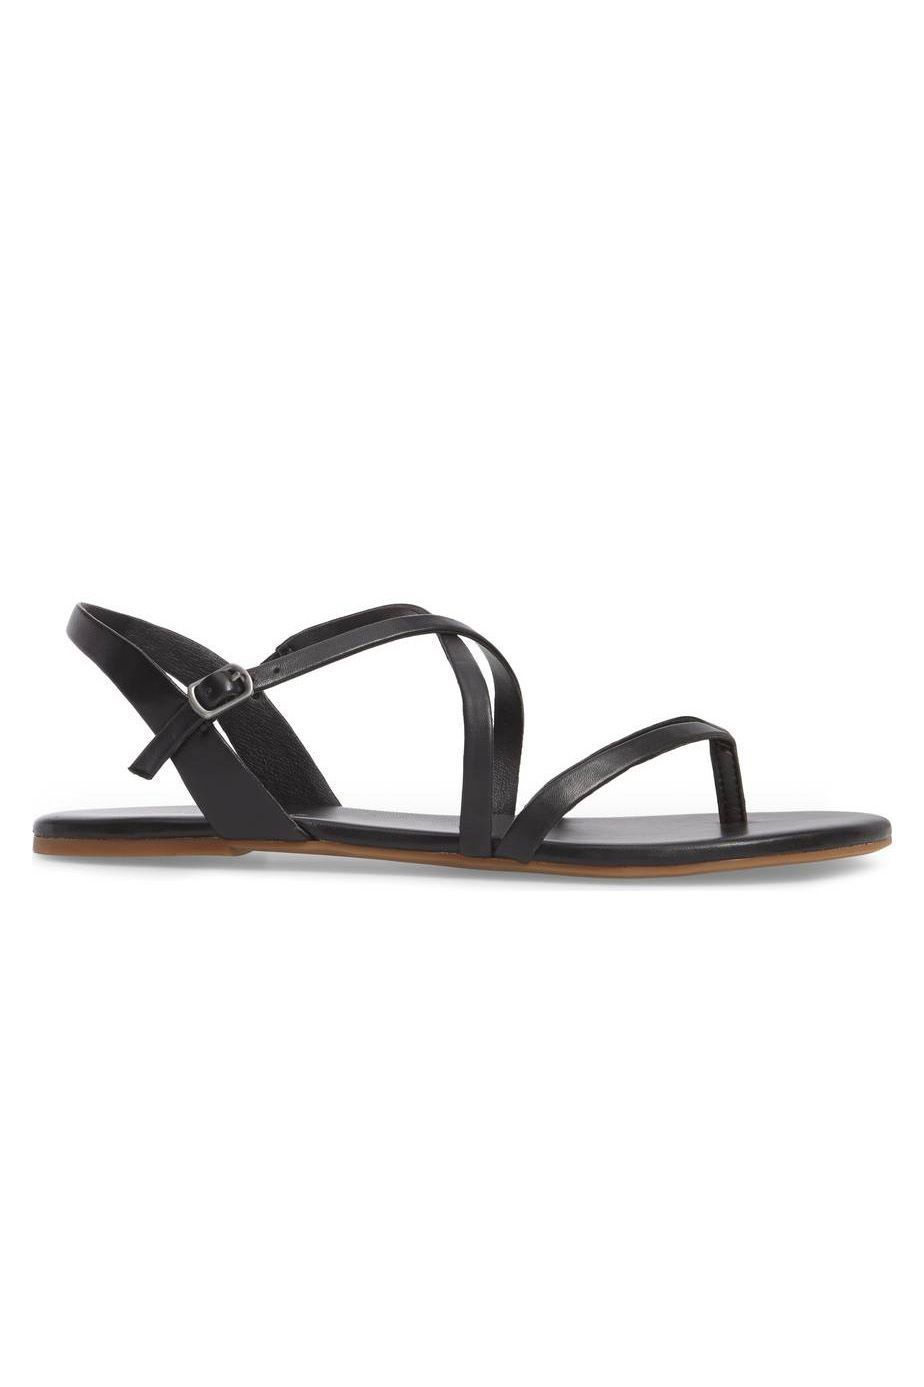 4f615ef5032d Best Flat Sandals for Summer 2018 - Most Comfortable and Stylish Slides